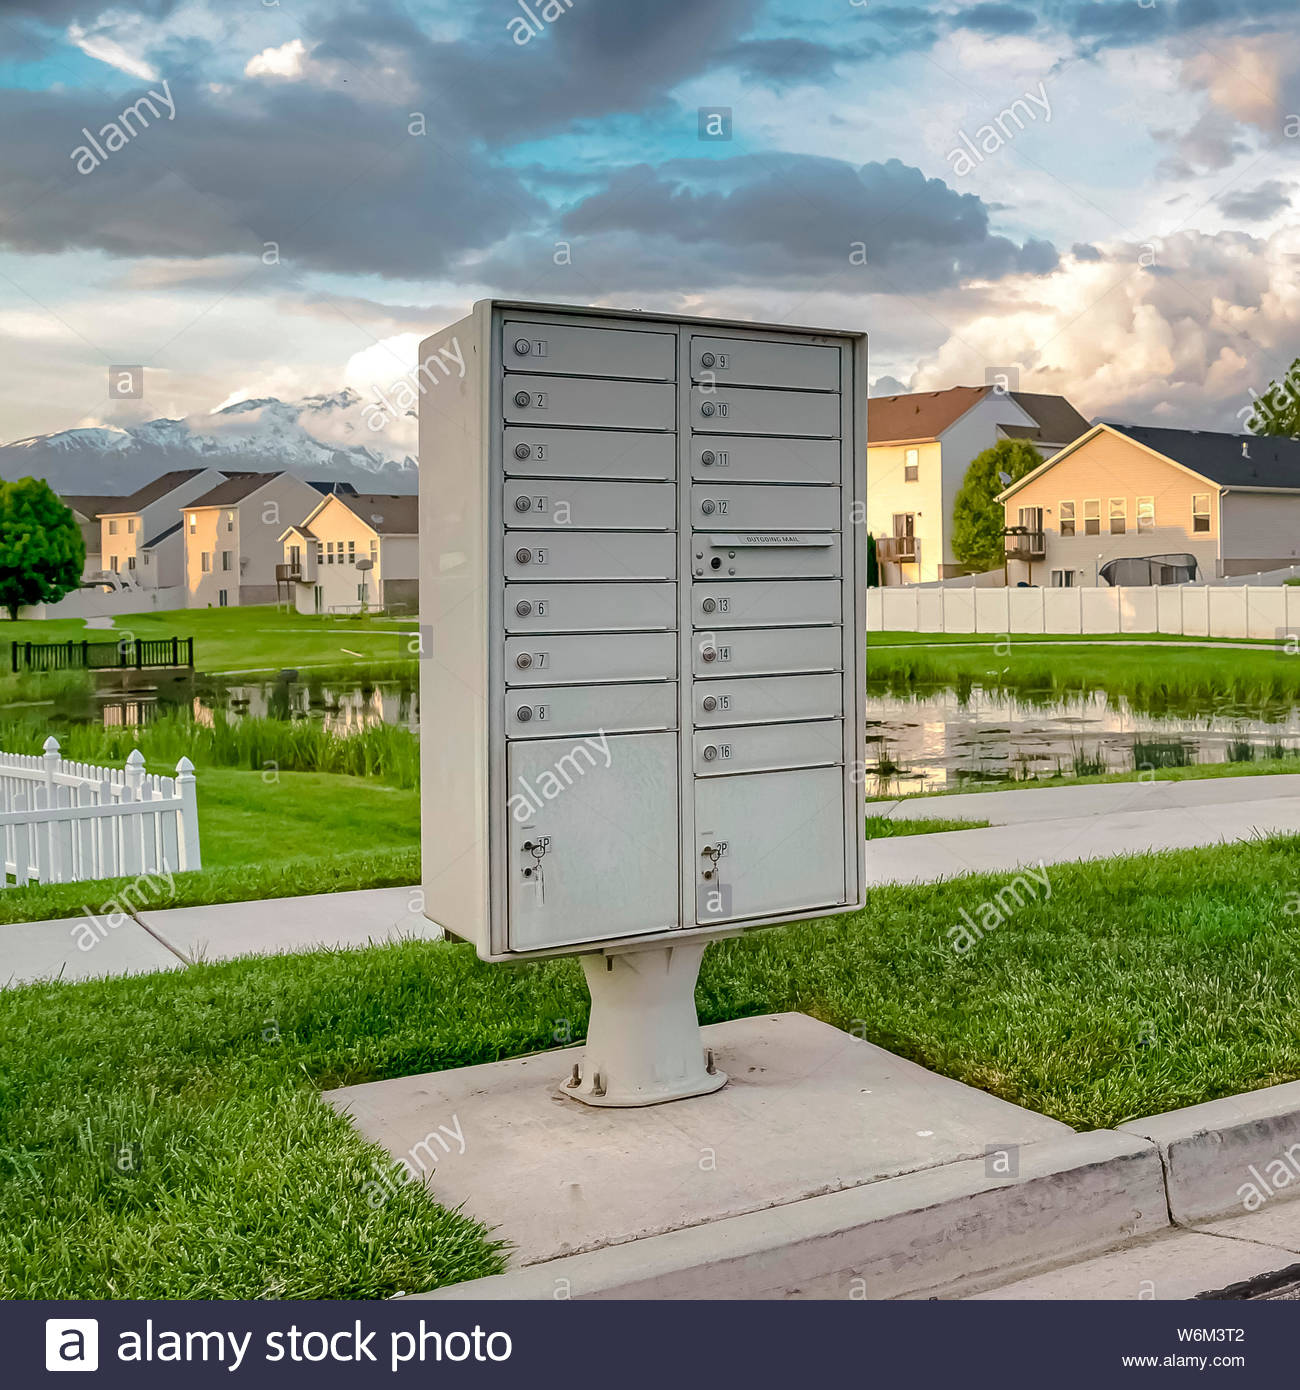 Square Mailbox on the side of the road with pond grassy terrain 1300x1390